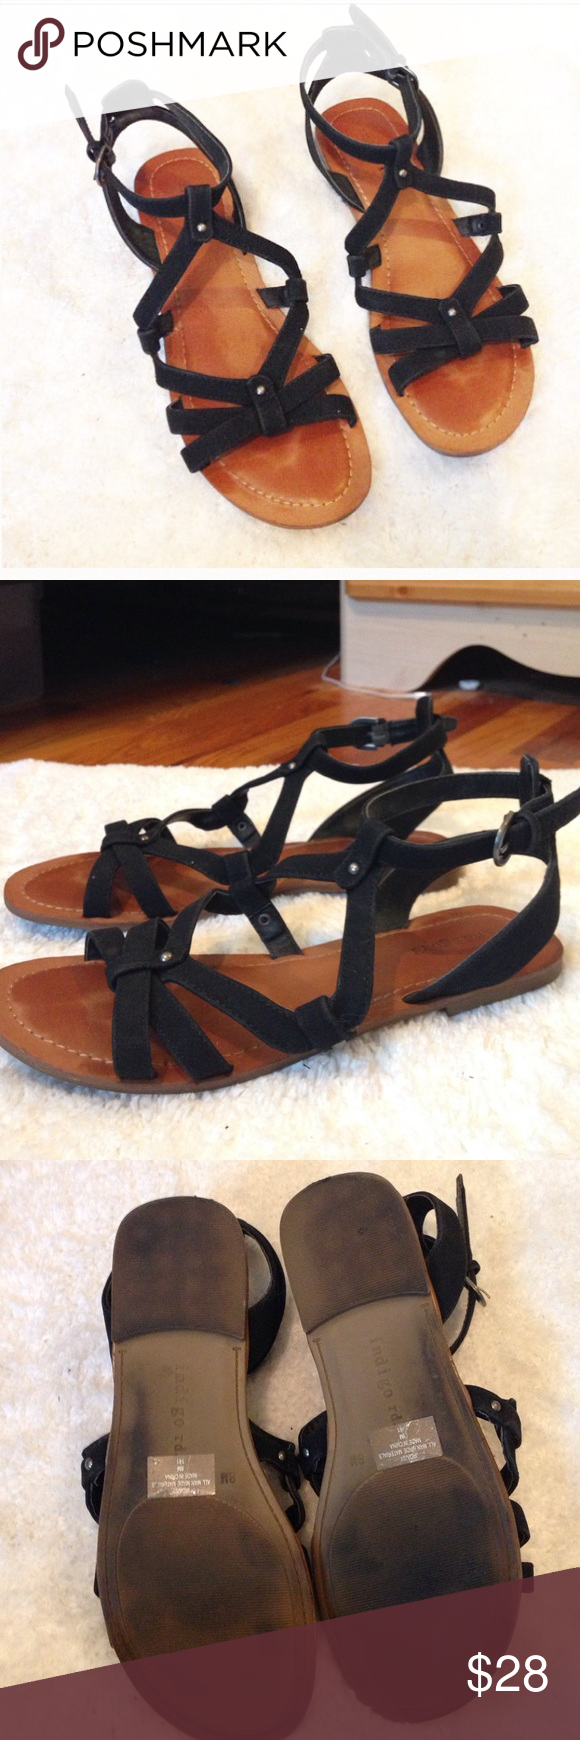 Black sandals at dsw -  Gladiator Black Sandals Worn Once Very Comfortable And Stylish Black Gladiator Strappy Sandal With Tan Sole Purchased From Dsw Size Shoes